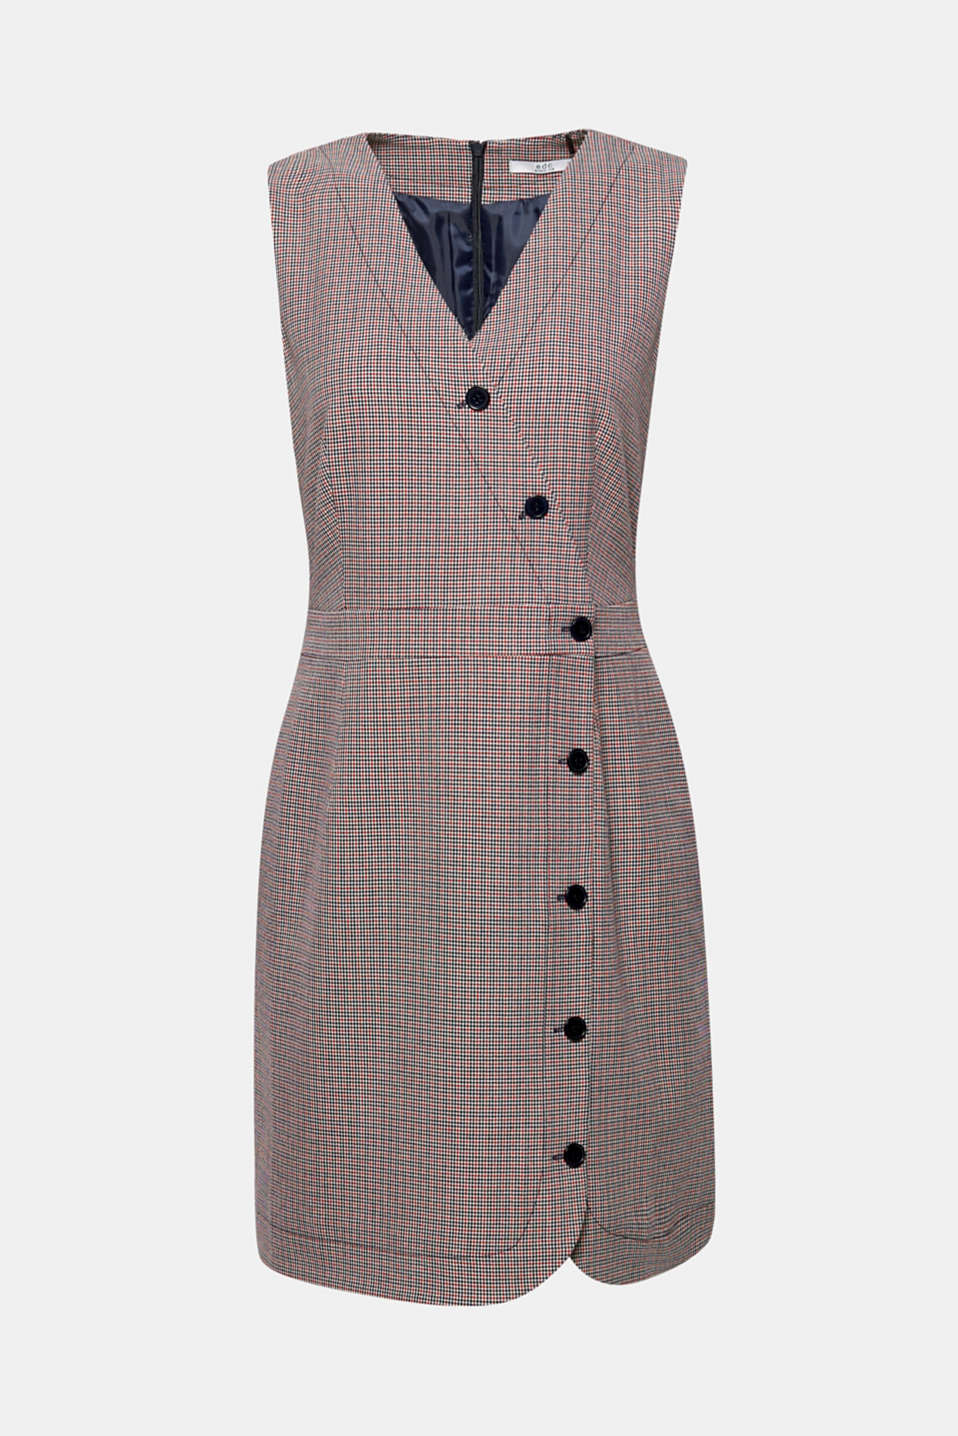 Sleeveless dress with a houndstooth check pattern